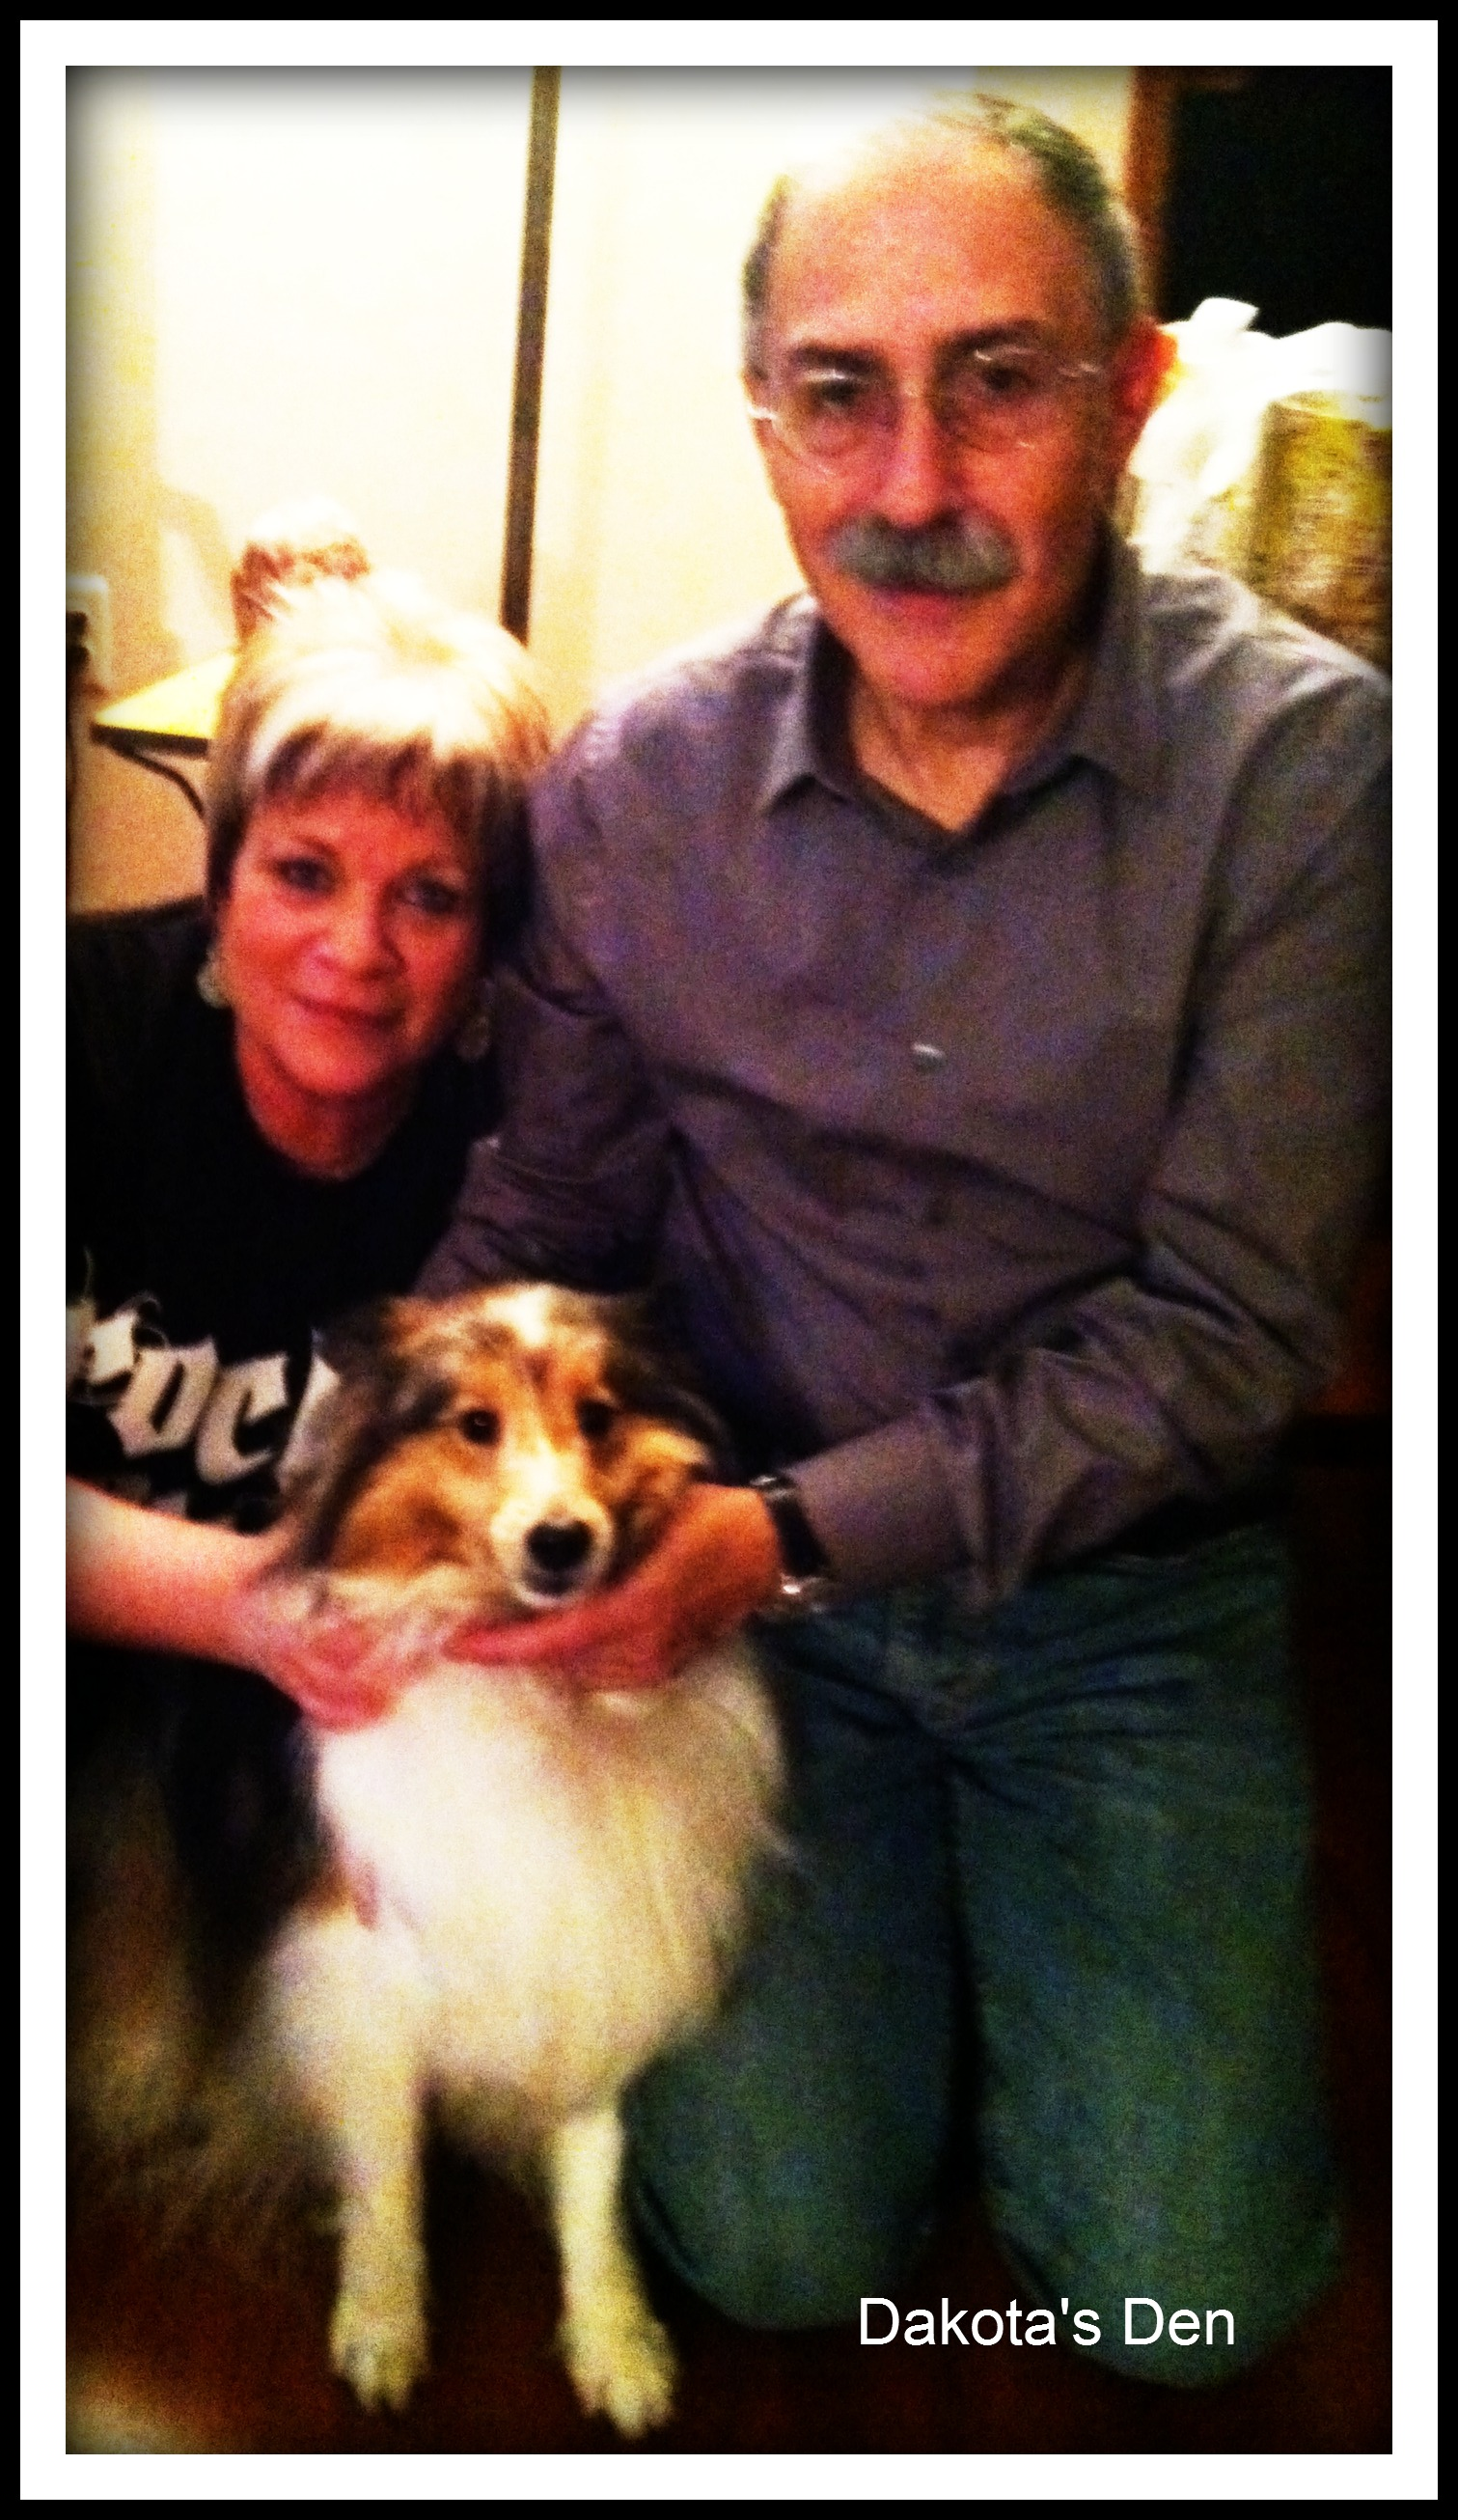 caren dakota and lenny best yom kippur 2012edited